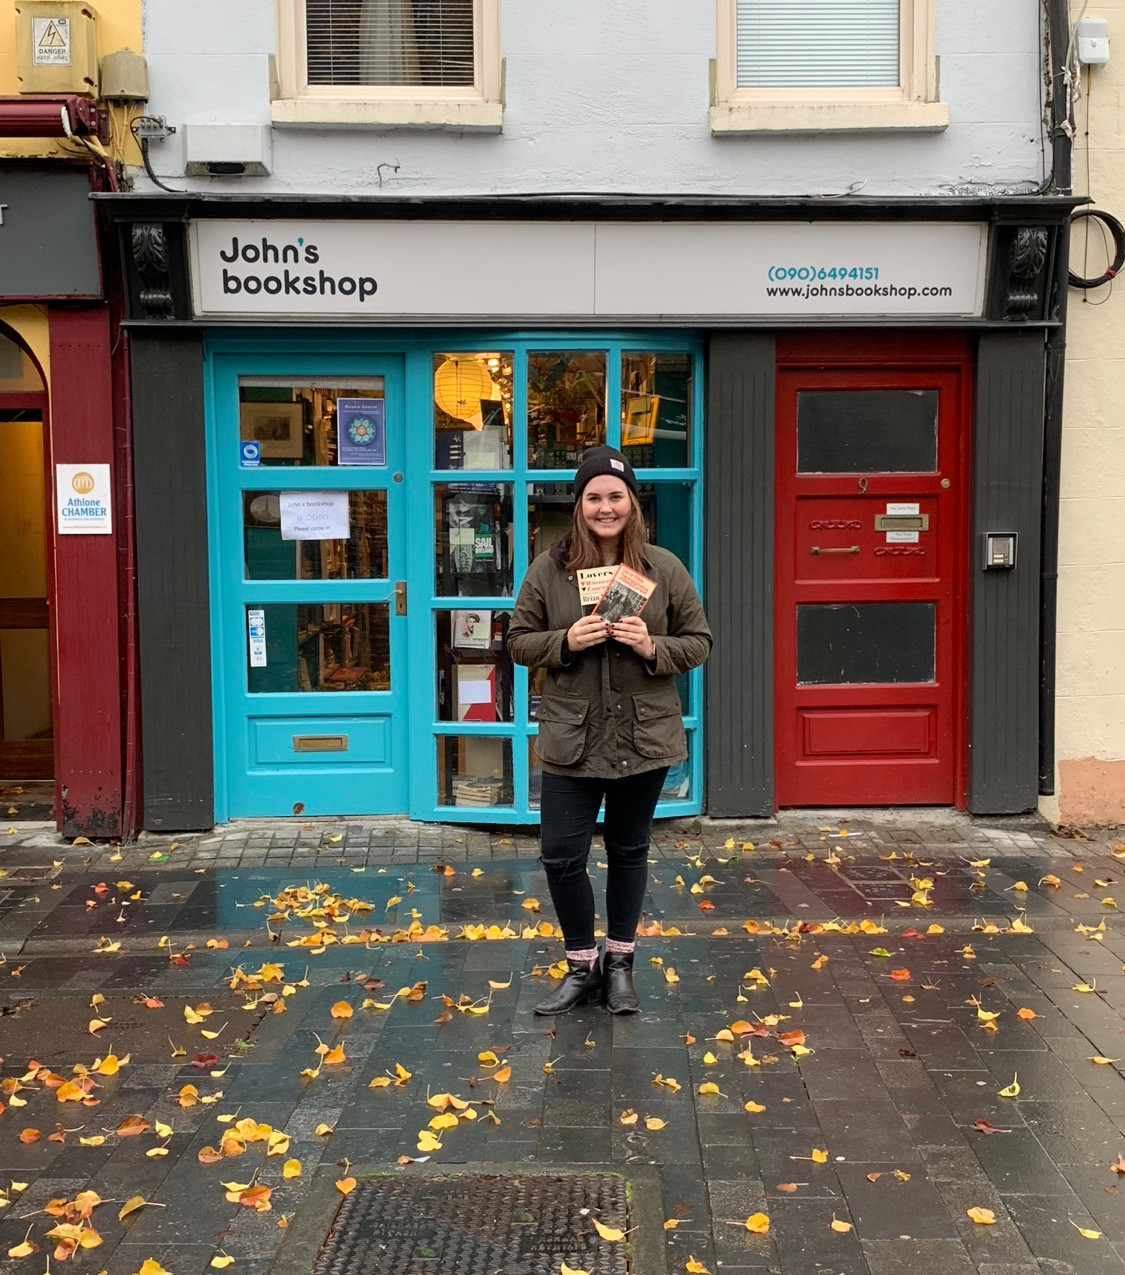 Christine loves plays and bought oneofOscar Wilde's atJohn's Bookshop